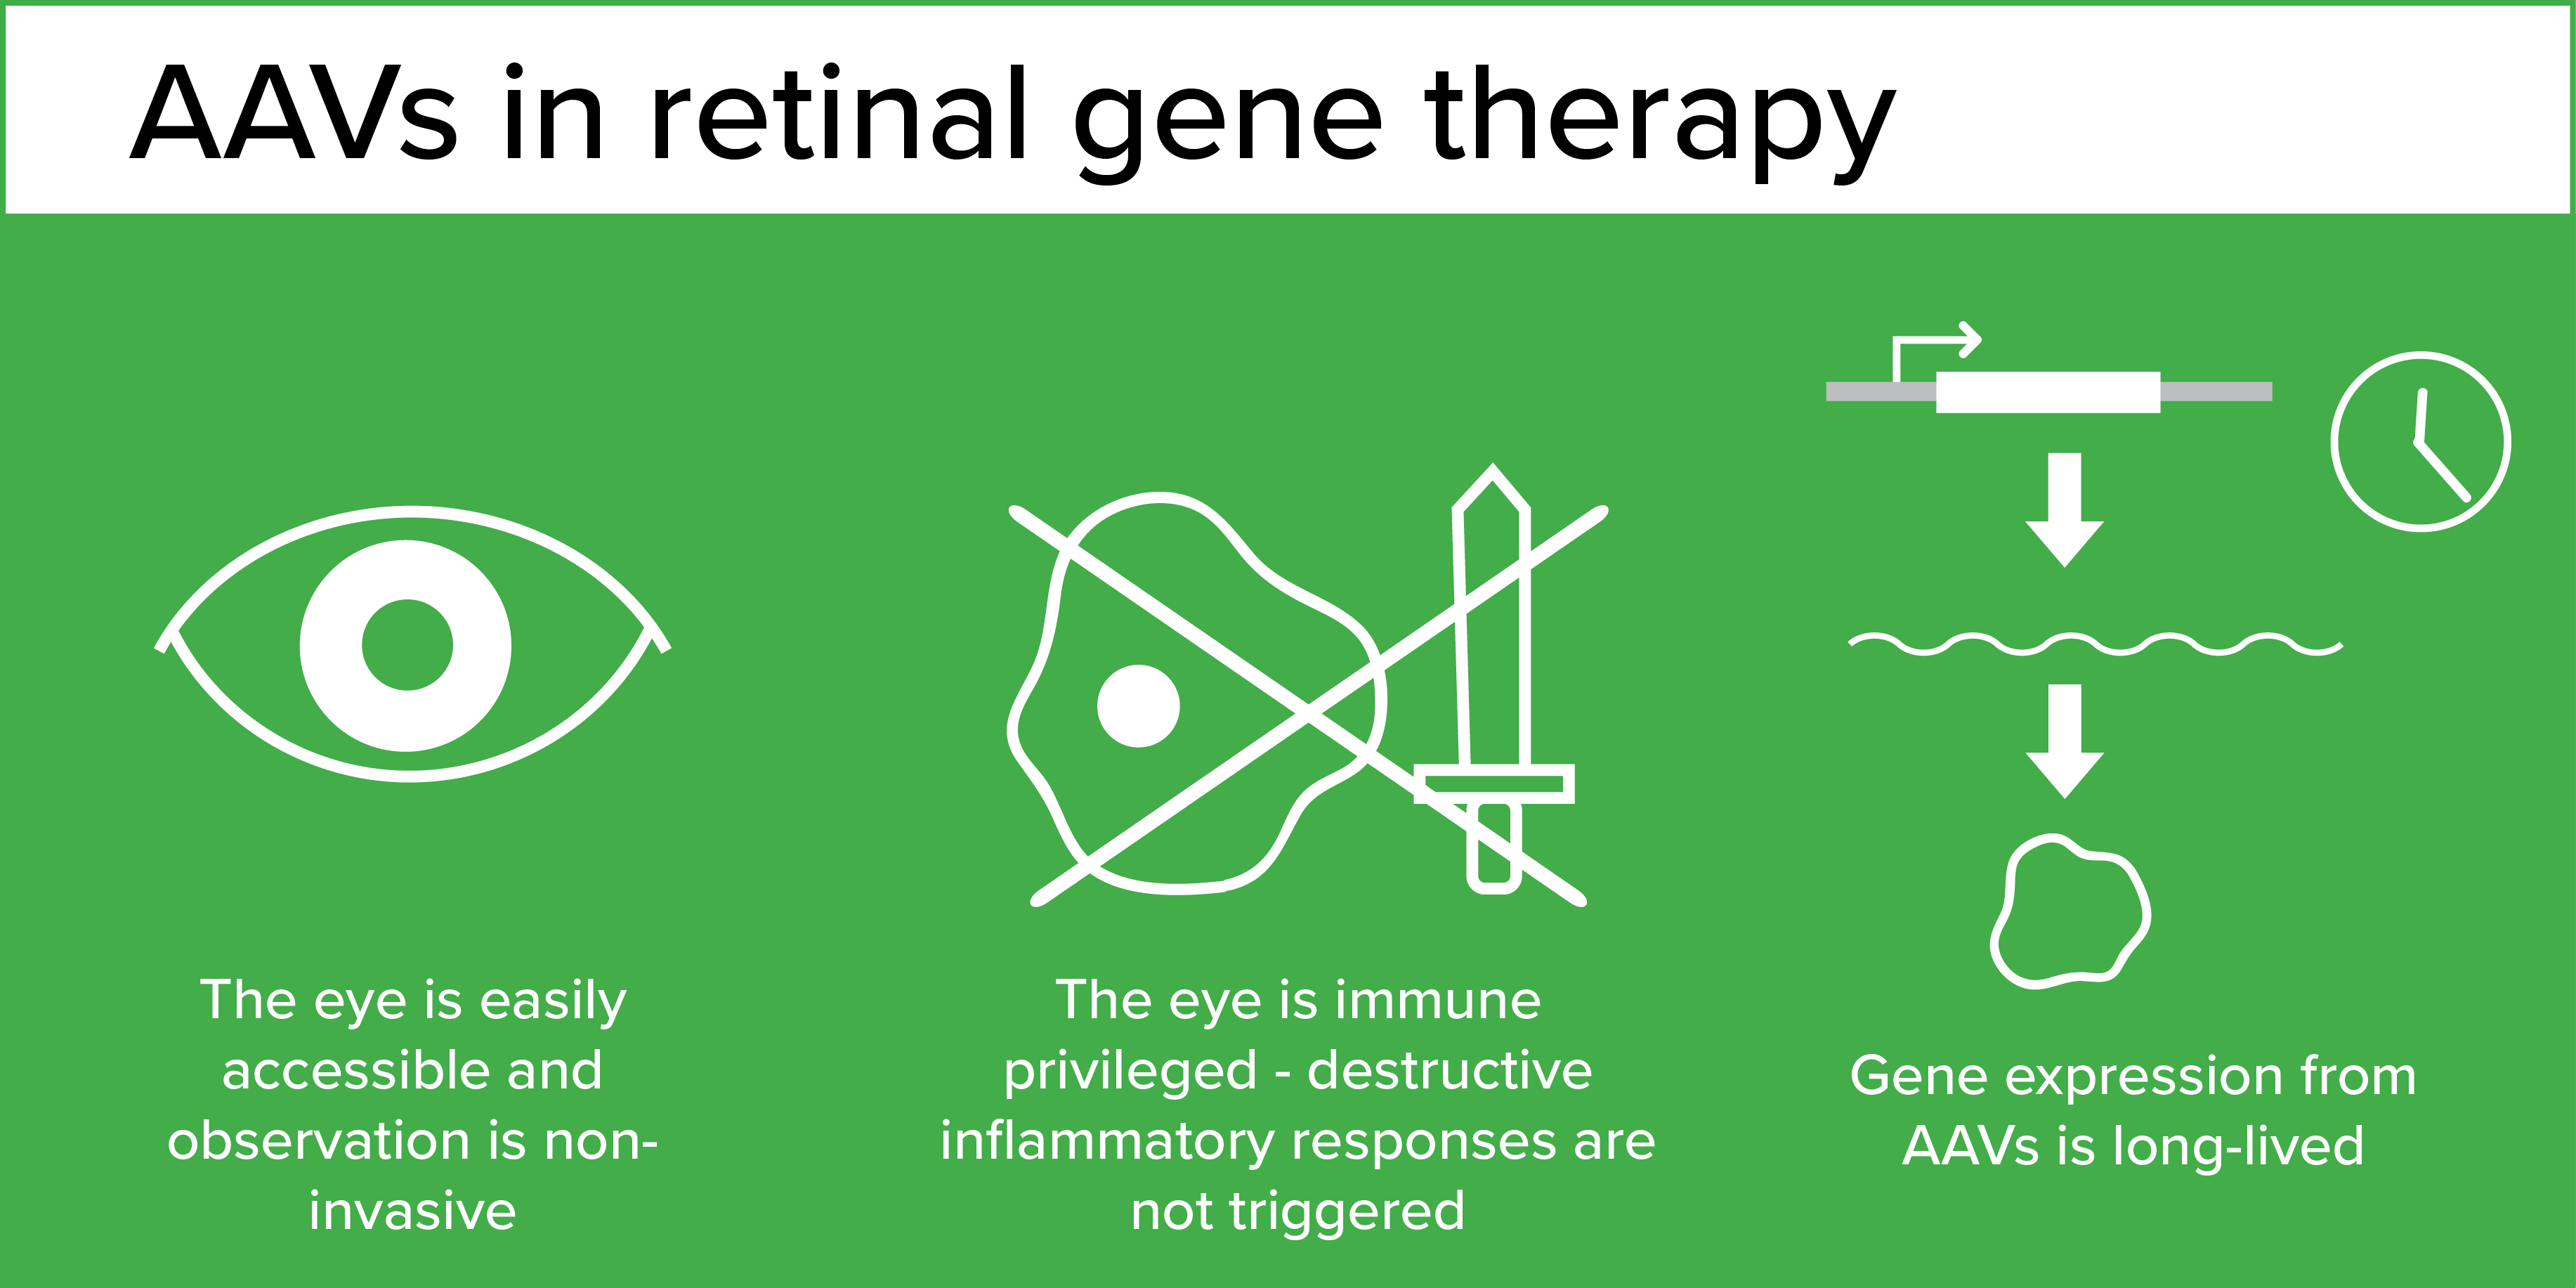 AAVs in retinal gene therapy infographic